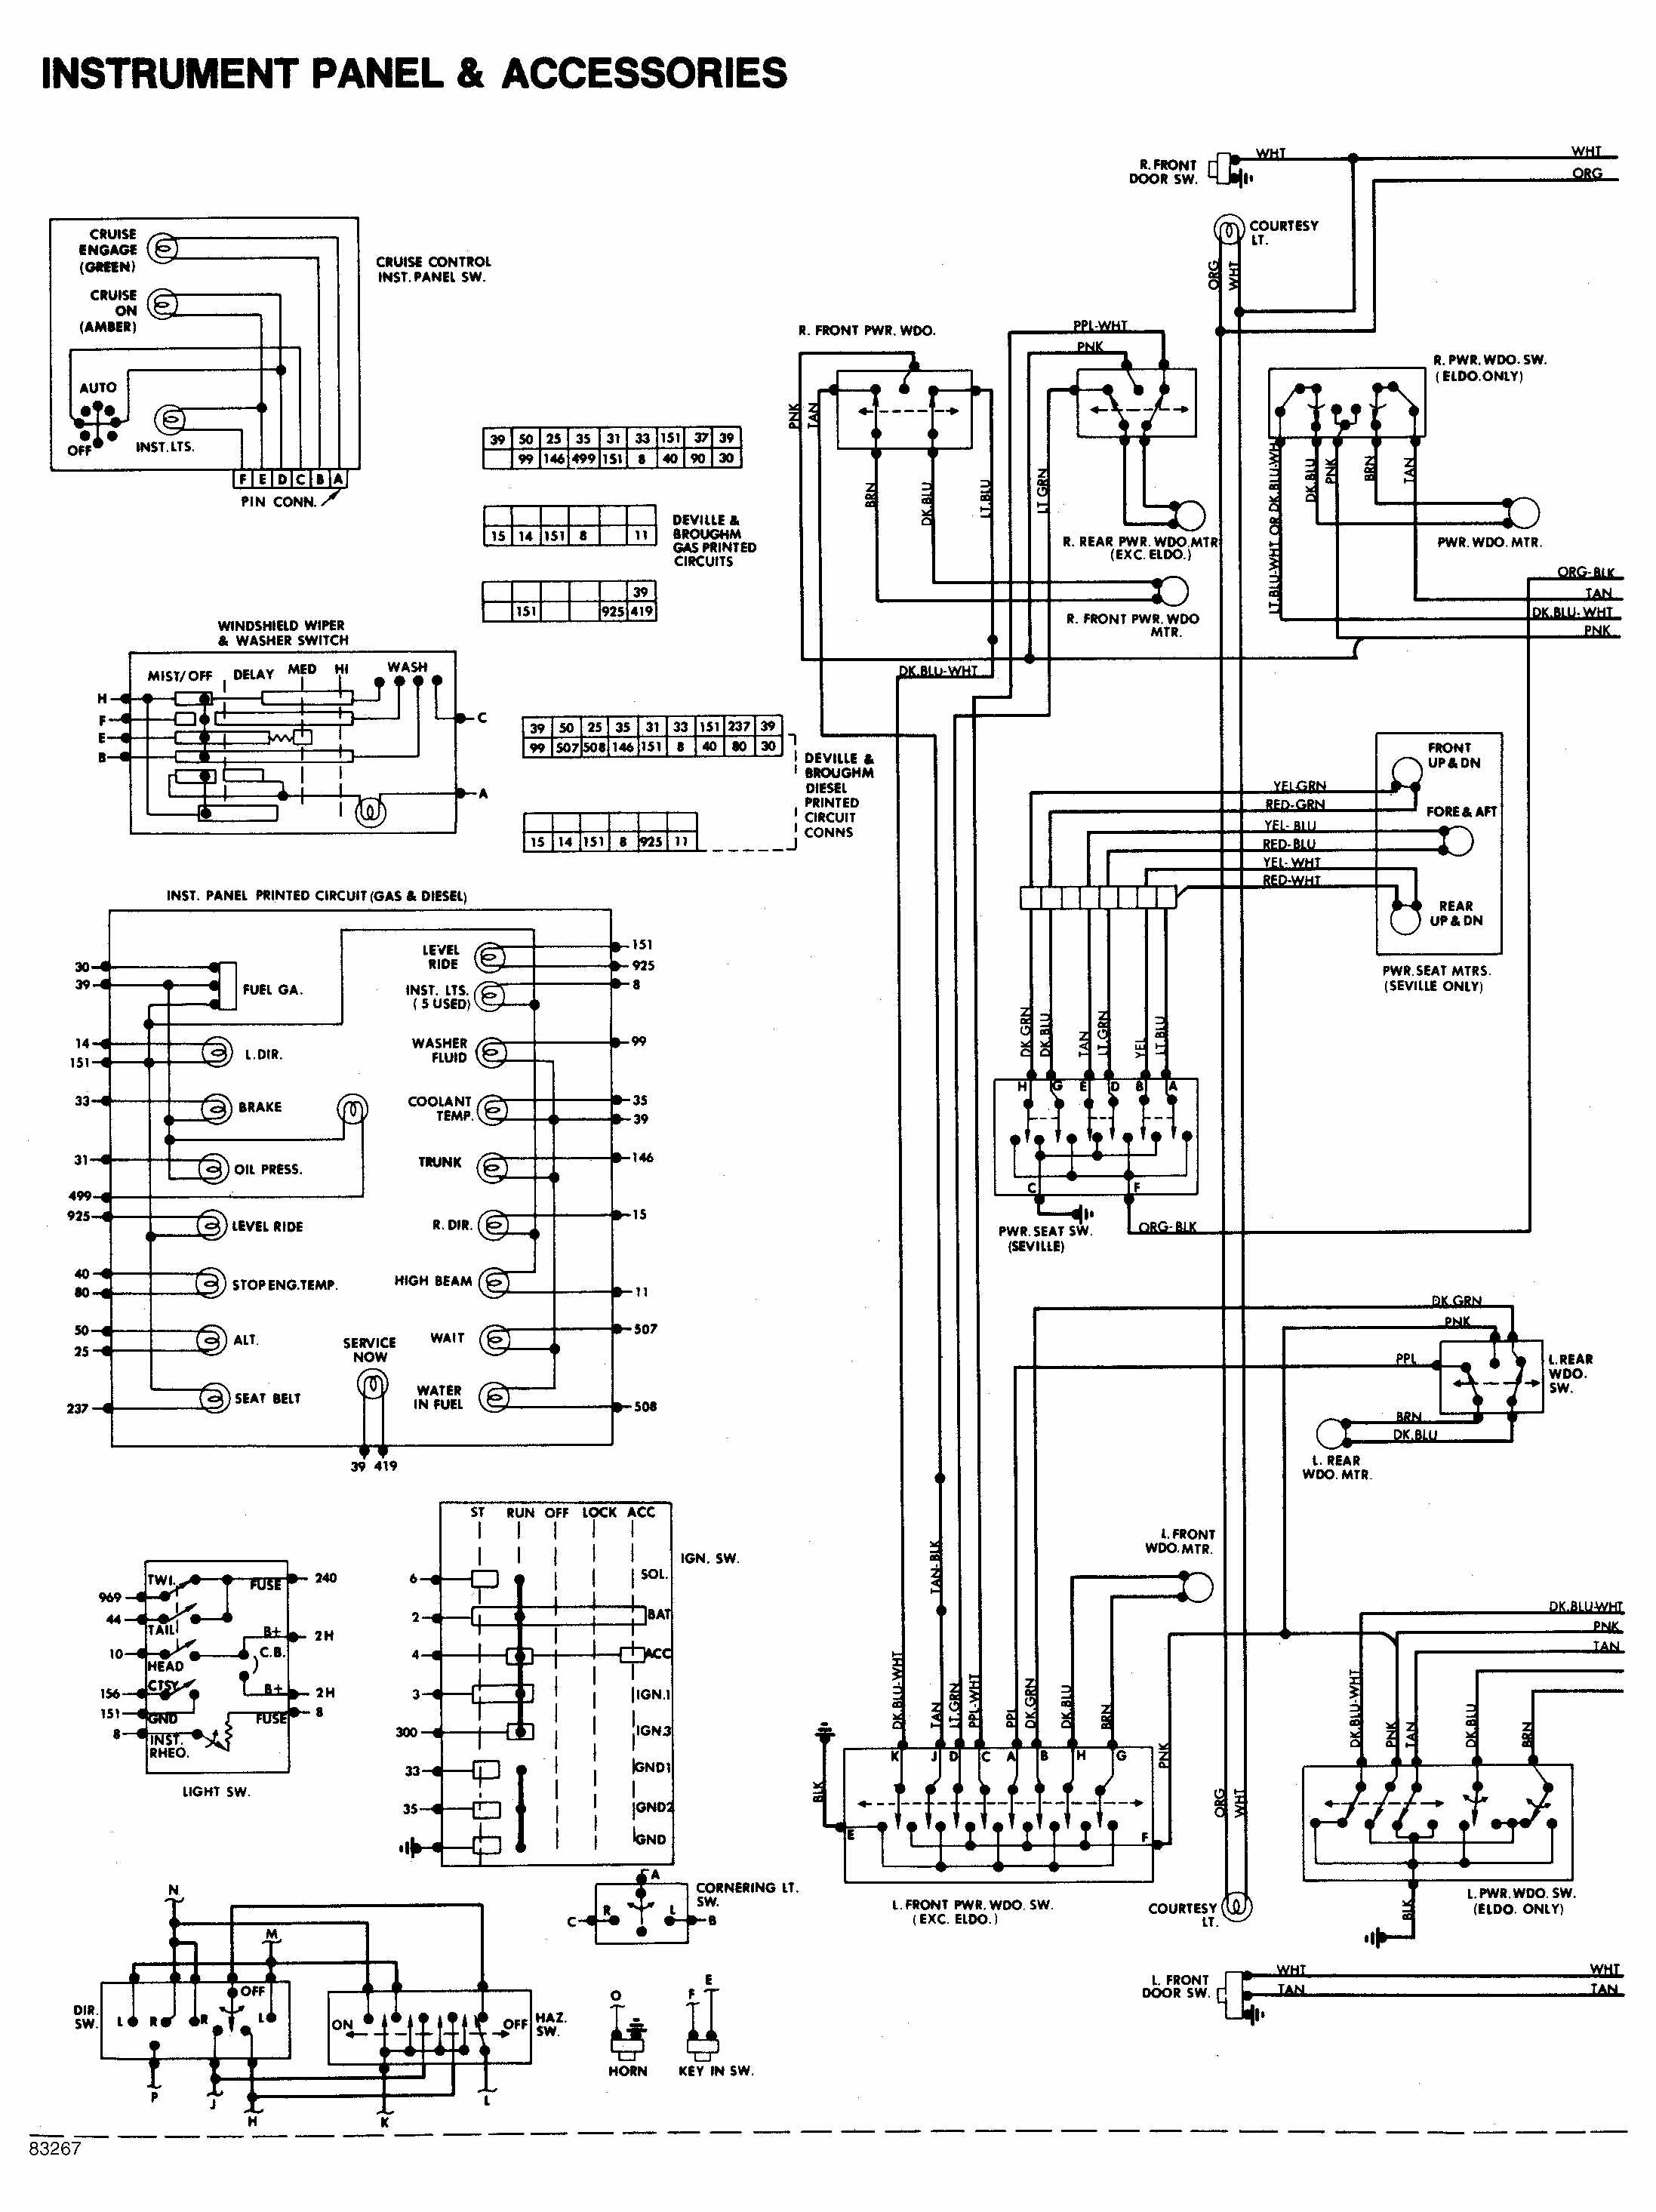 instrument panel and accessories wiring diagram of 1984 cadillac deville cadillac eldorado wiring harness wiring diagram simonand 2006 escalade radio wiring harness at bayanpartner.co